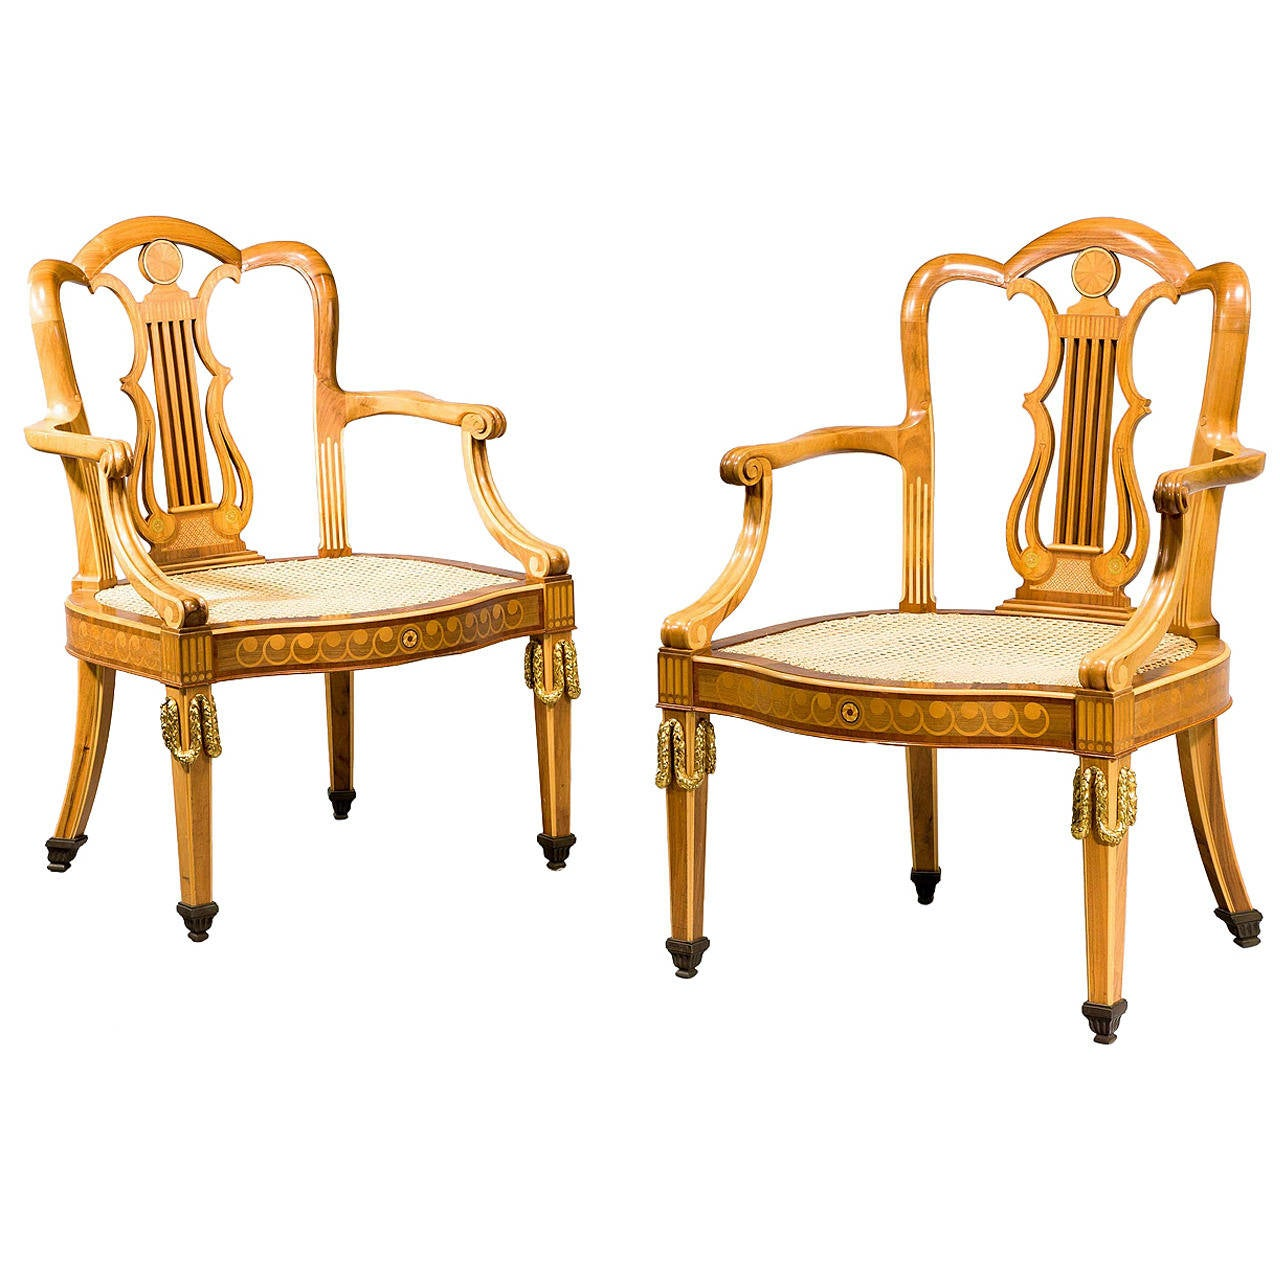 Pair of Early 20th Century Elbow Chairs